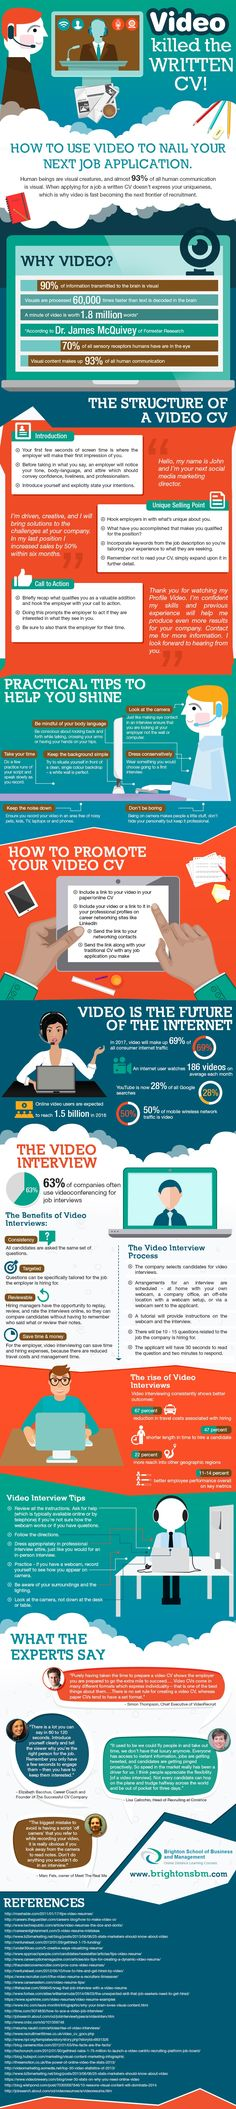 Top 5 Tips for Creating Impressive Video Resumes - video resume example